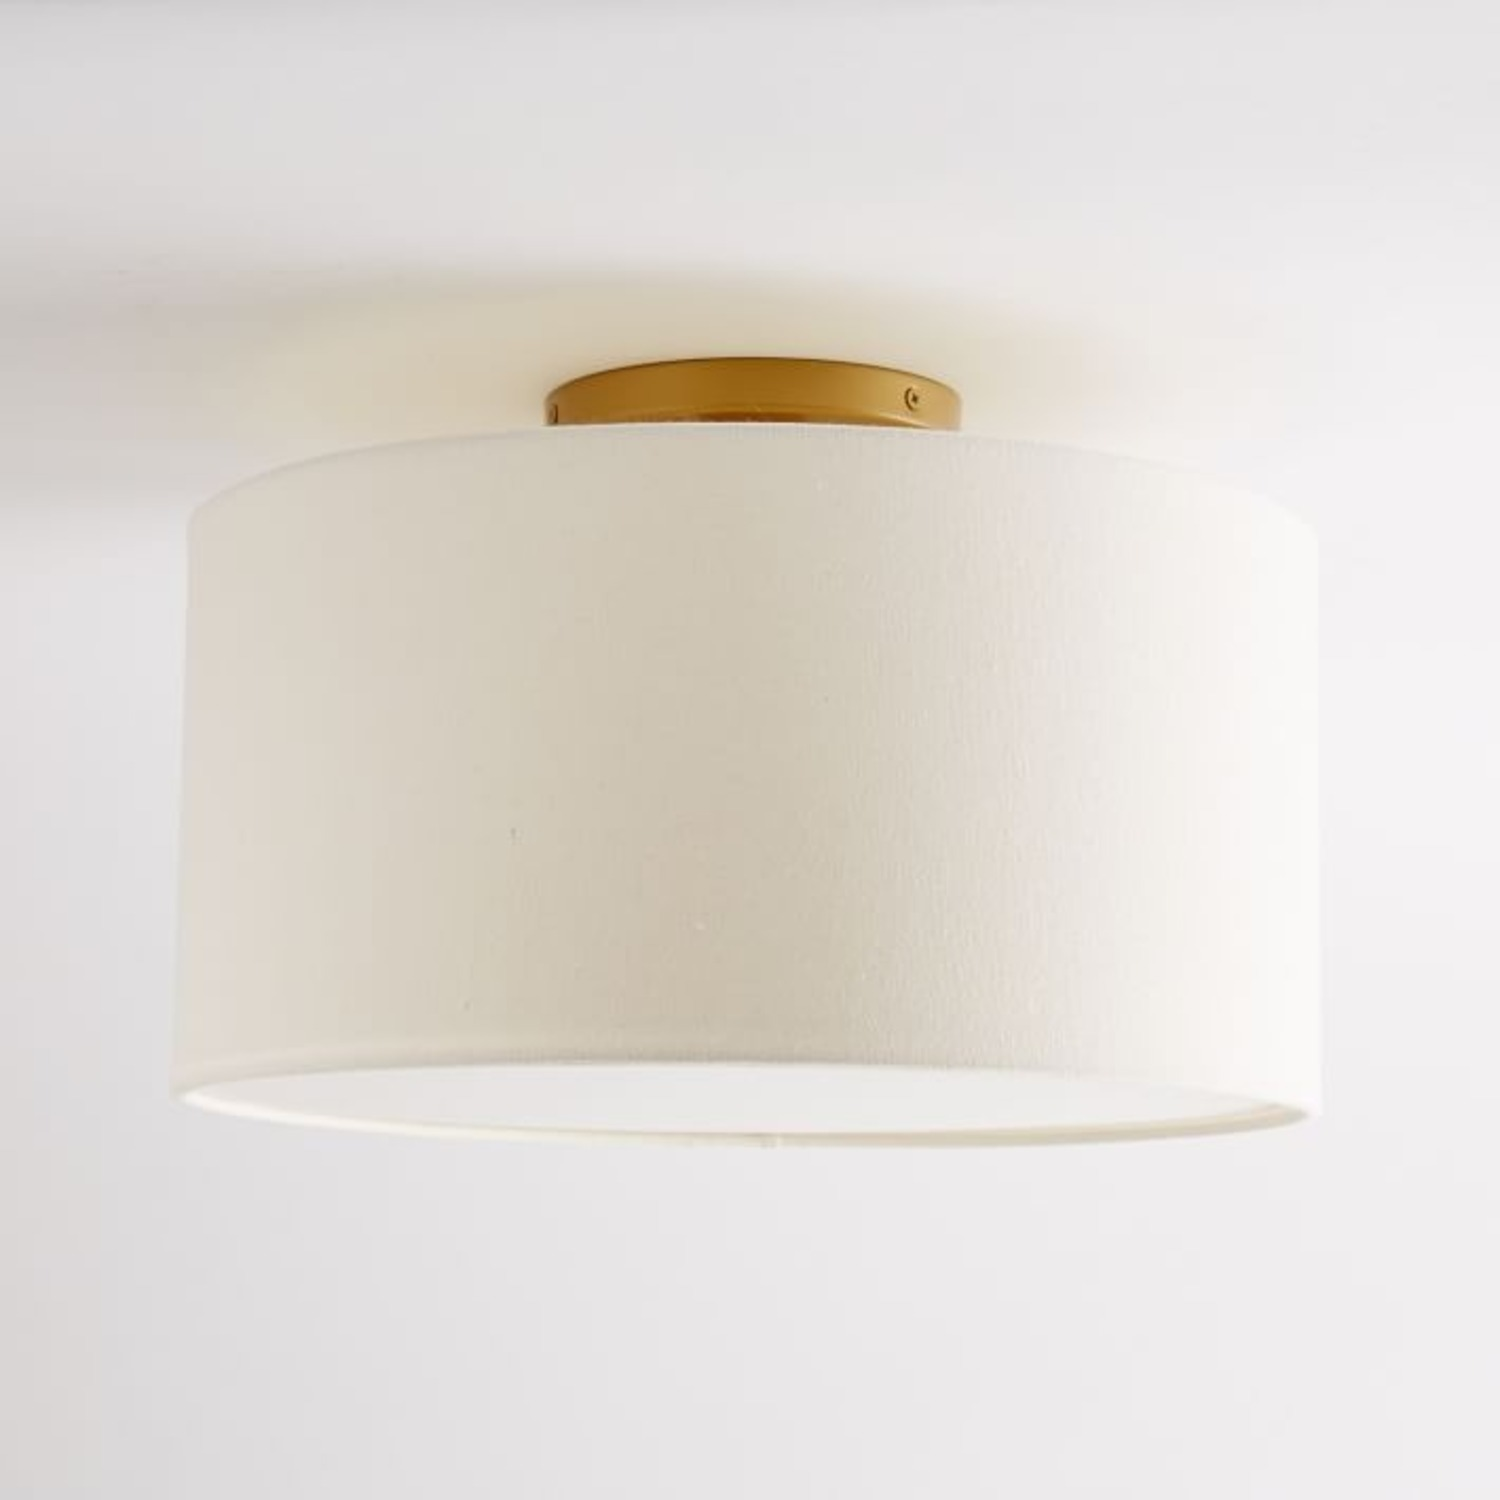 West Elm Fabric Shade Flush Mount - image-2